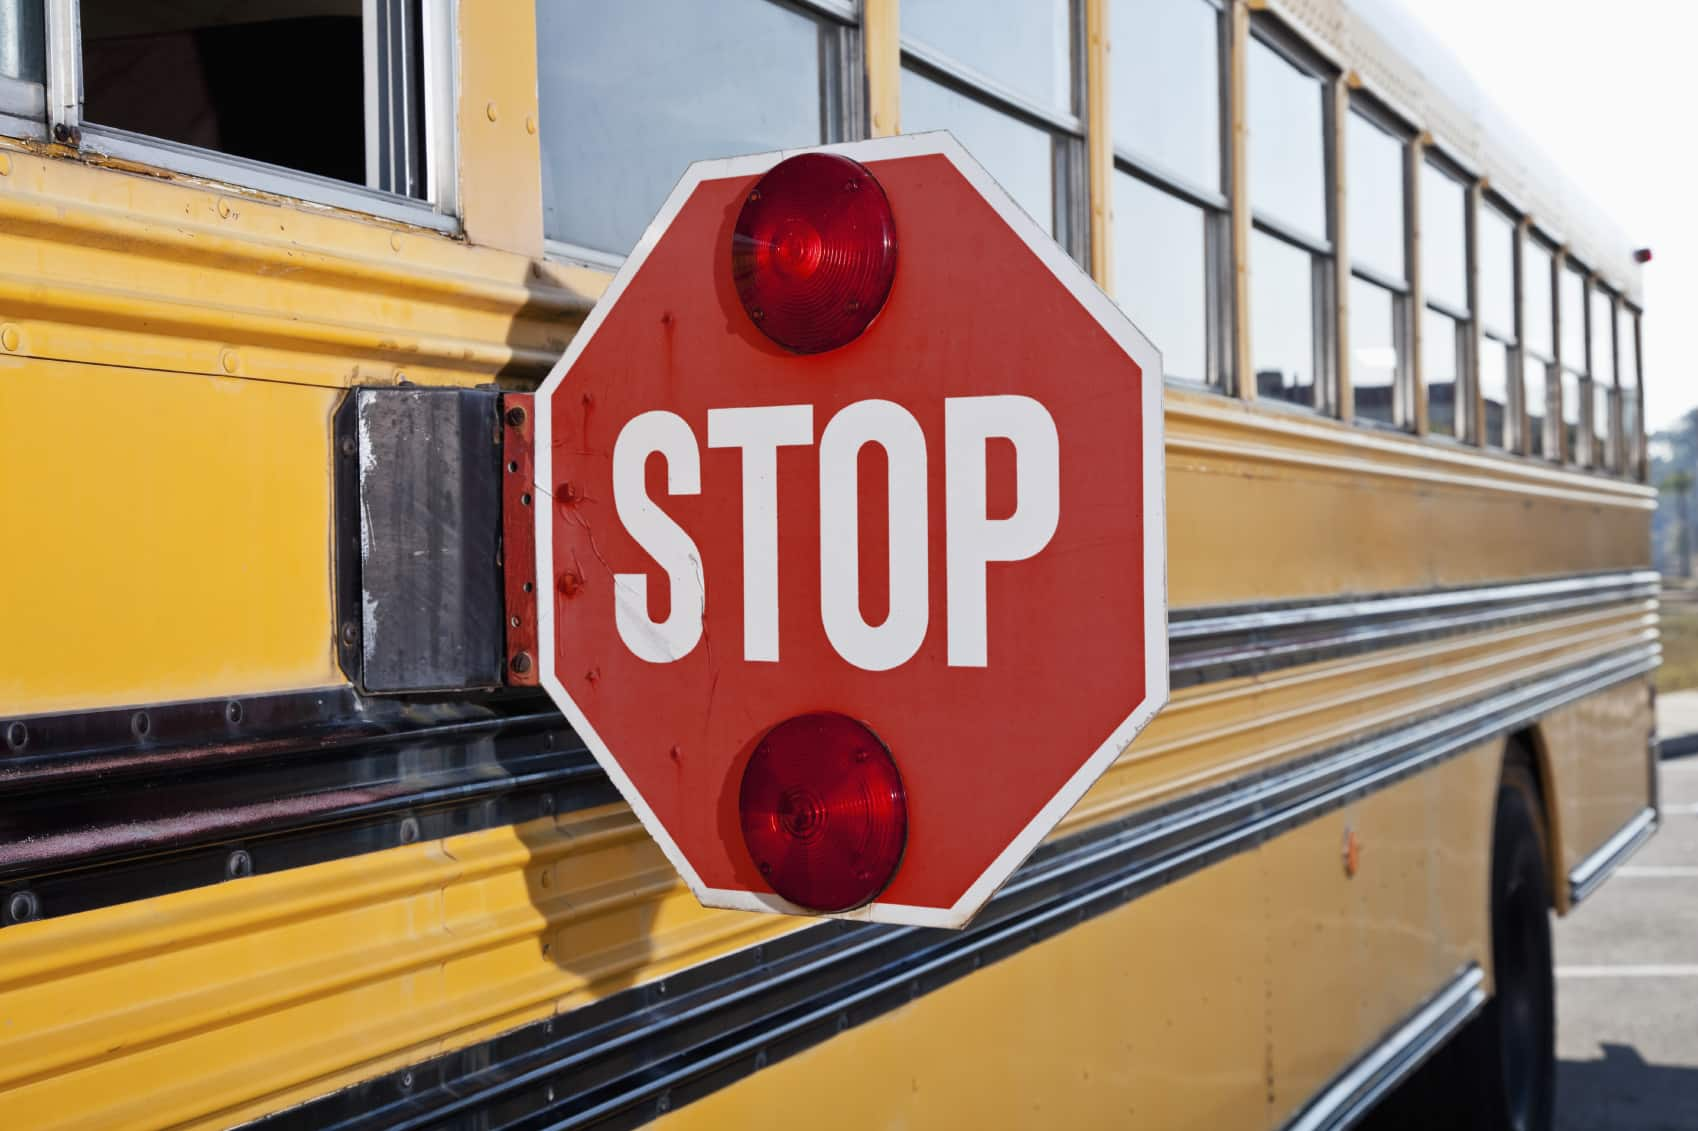 Stop sign on side of yellow school bus.